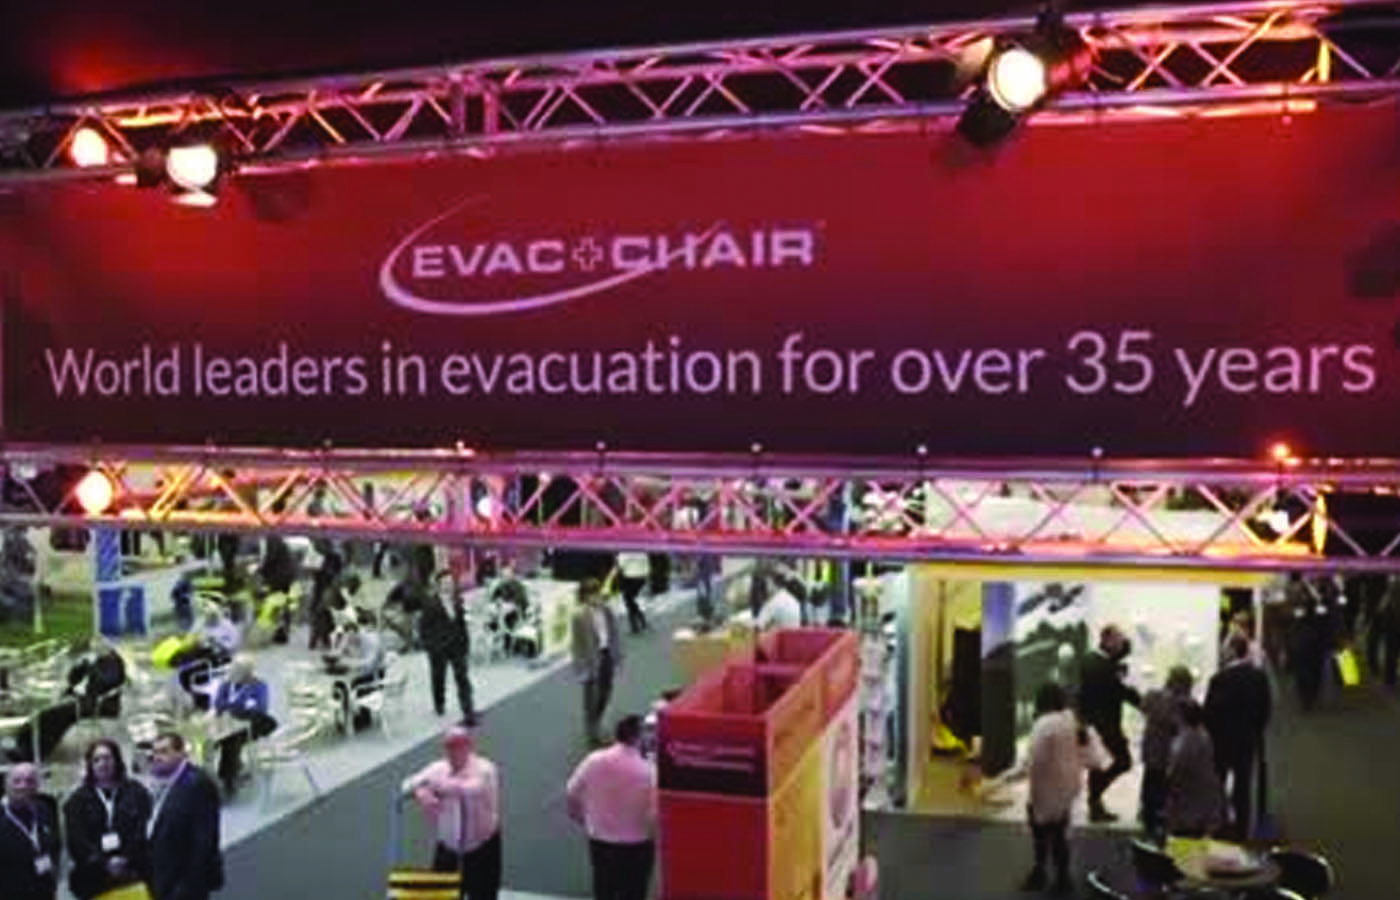 Evac+Chair International wins award at 2015 The Health & Safety Event